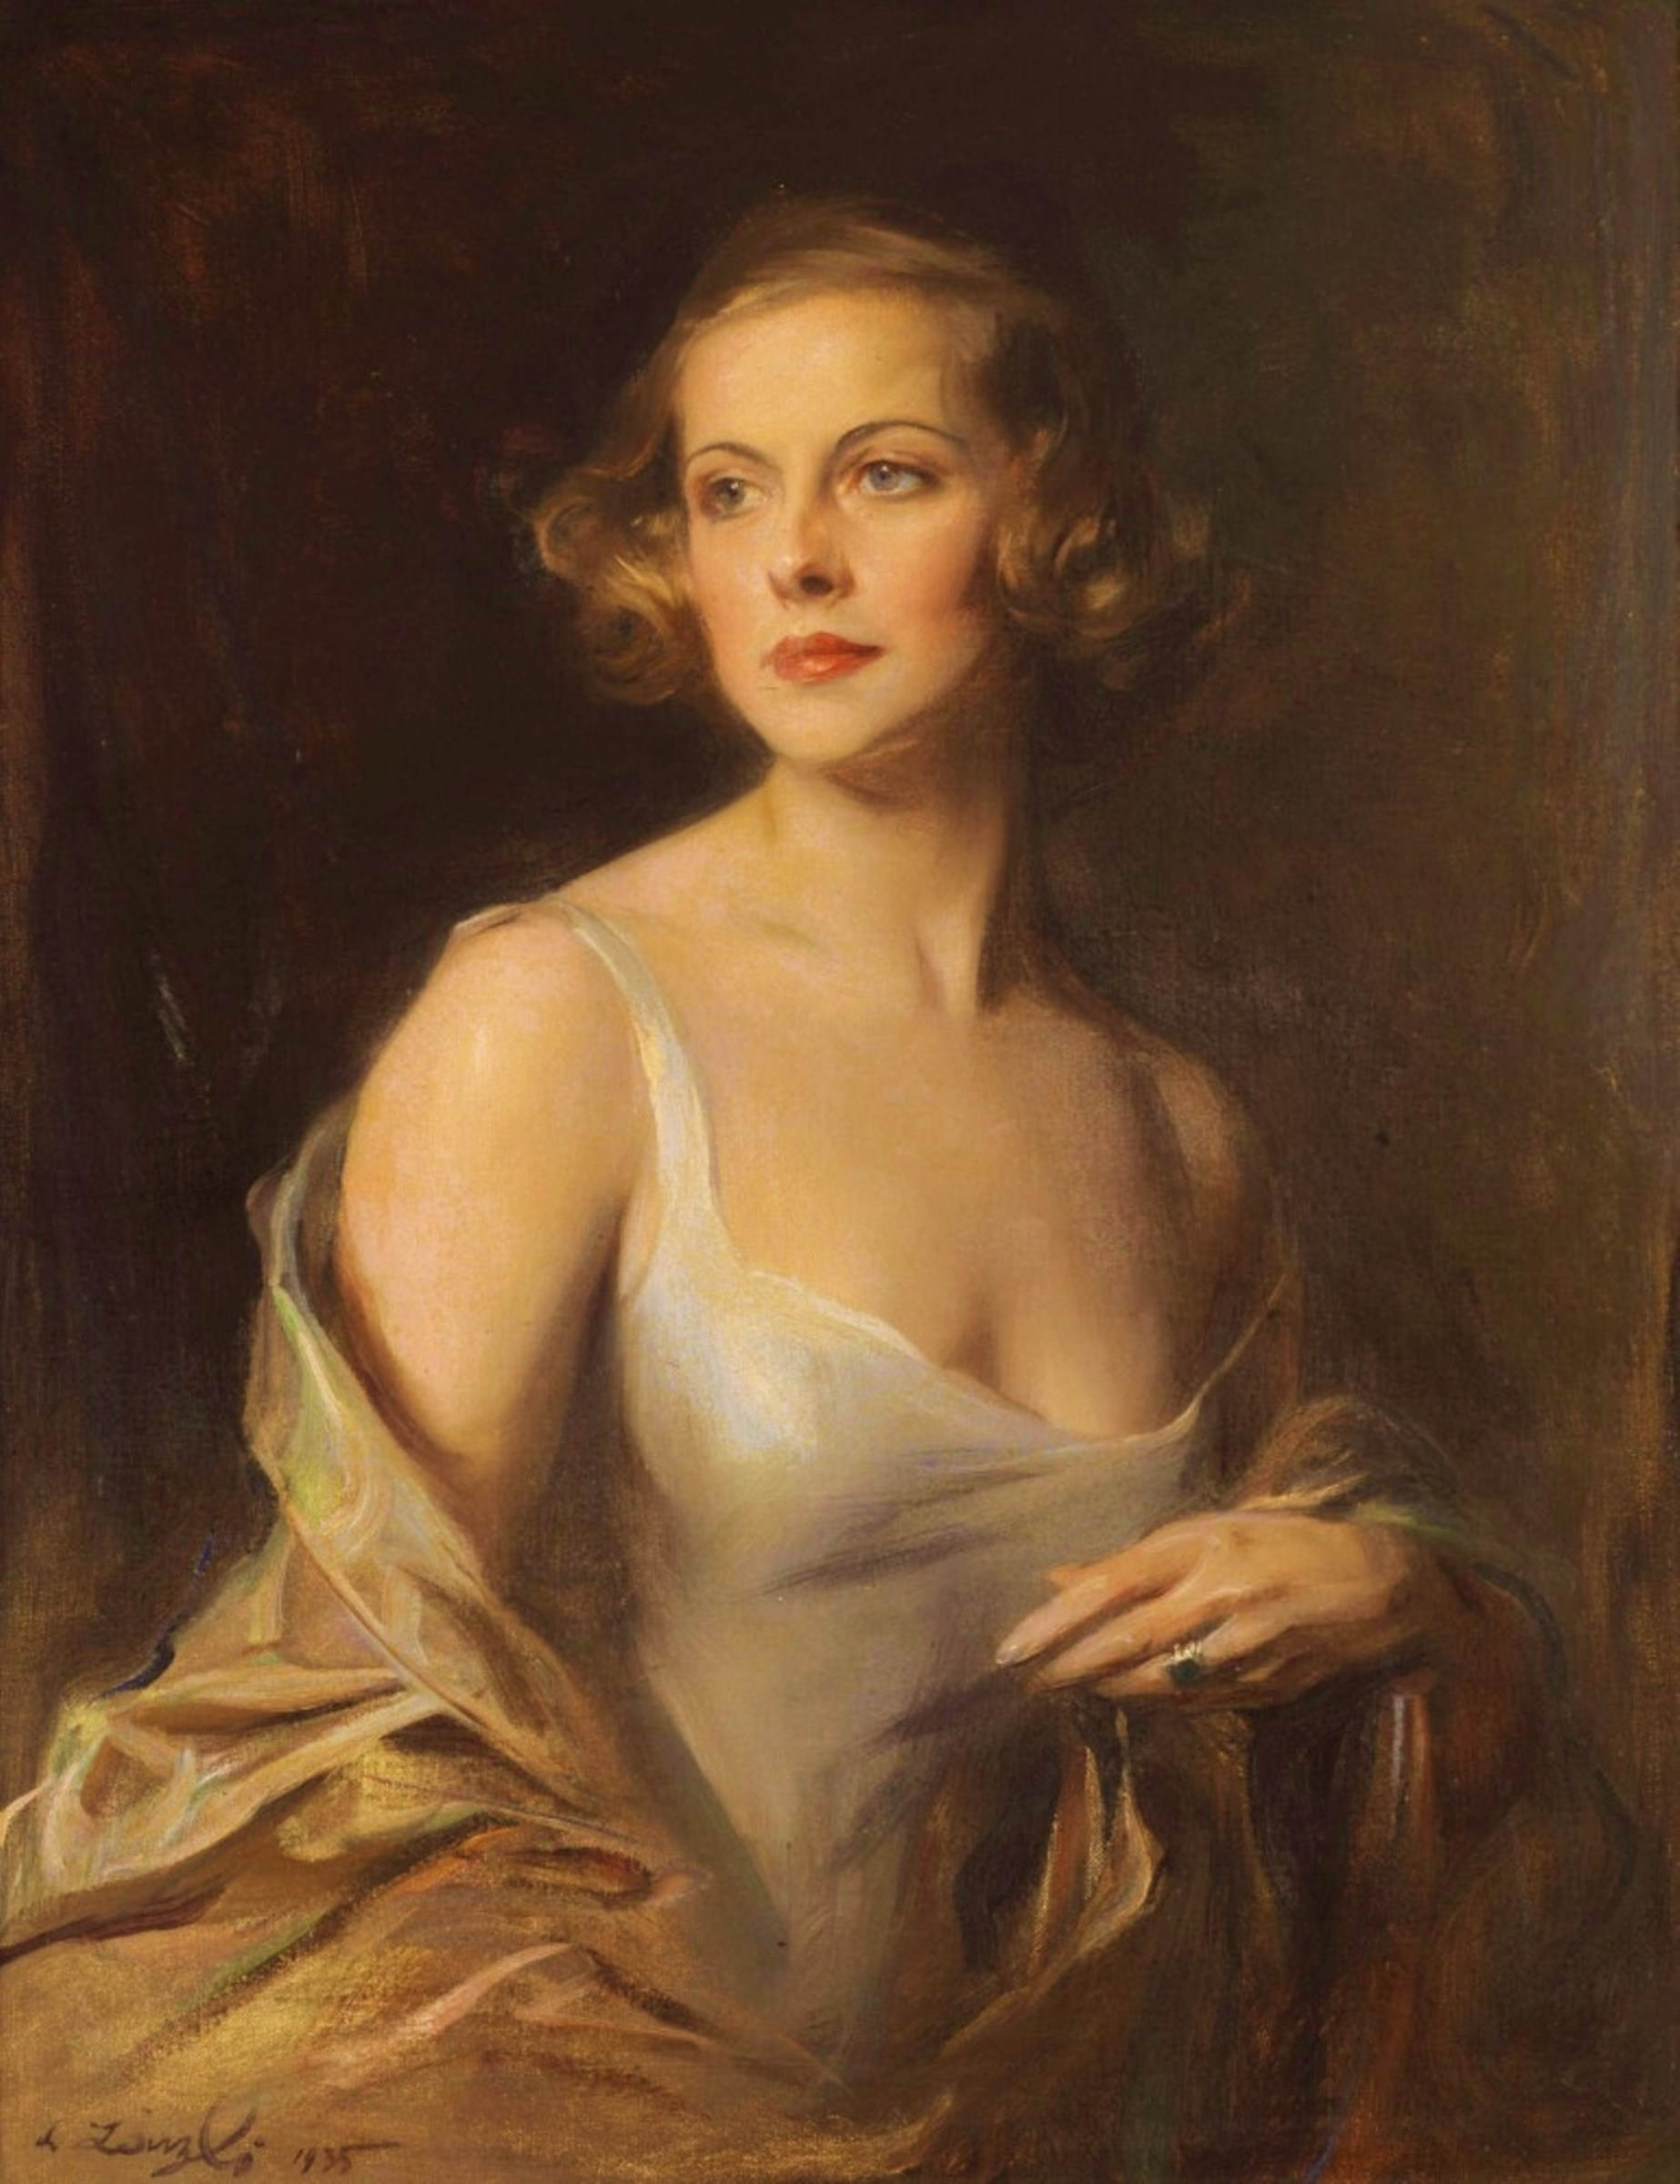 https://upload.wikimedia.org/wikipedia/commons/0/06/H%C3%A9l%C3%A8ne_Charlotte_de_Berquely-Richards_%281908-2004%29.jpg